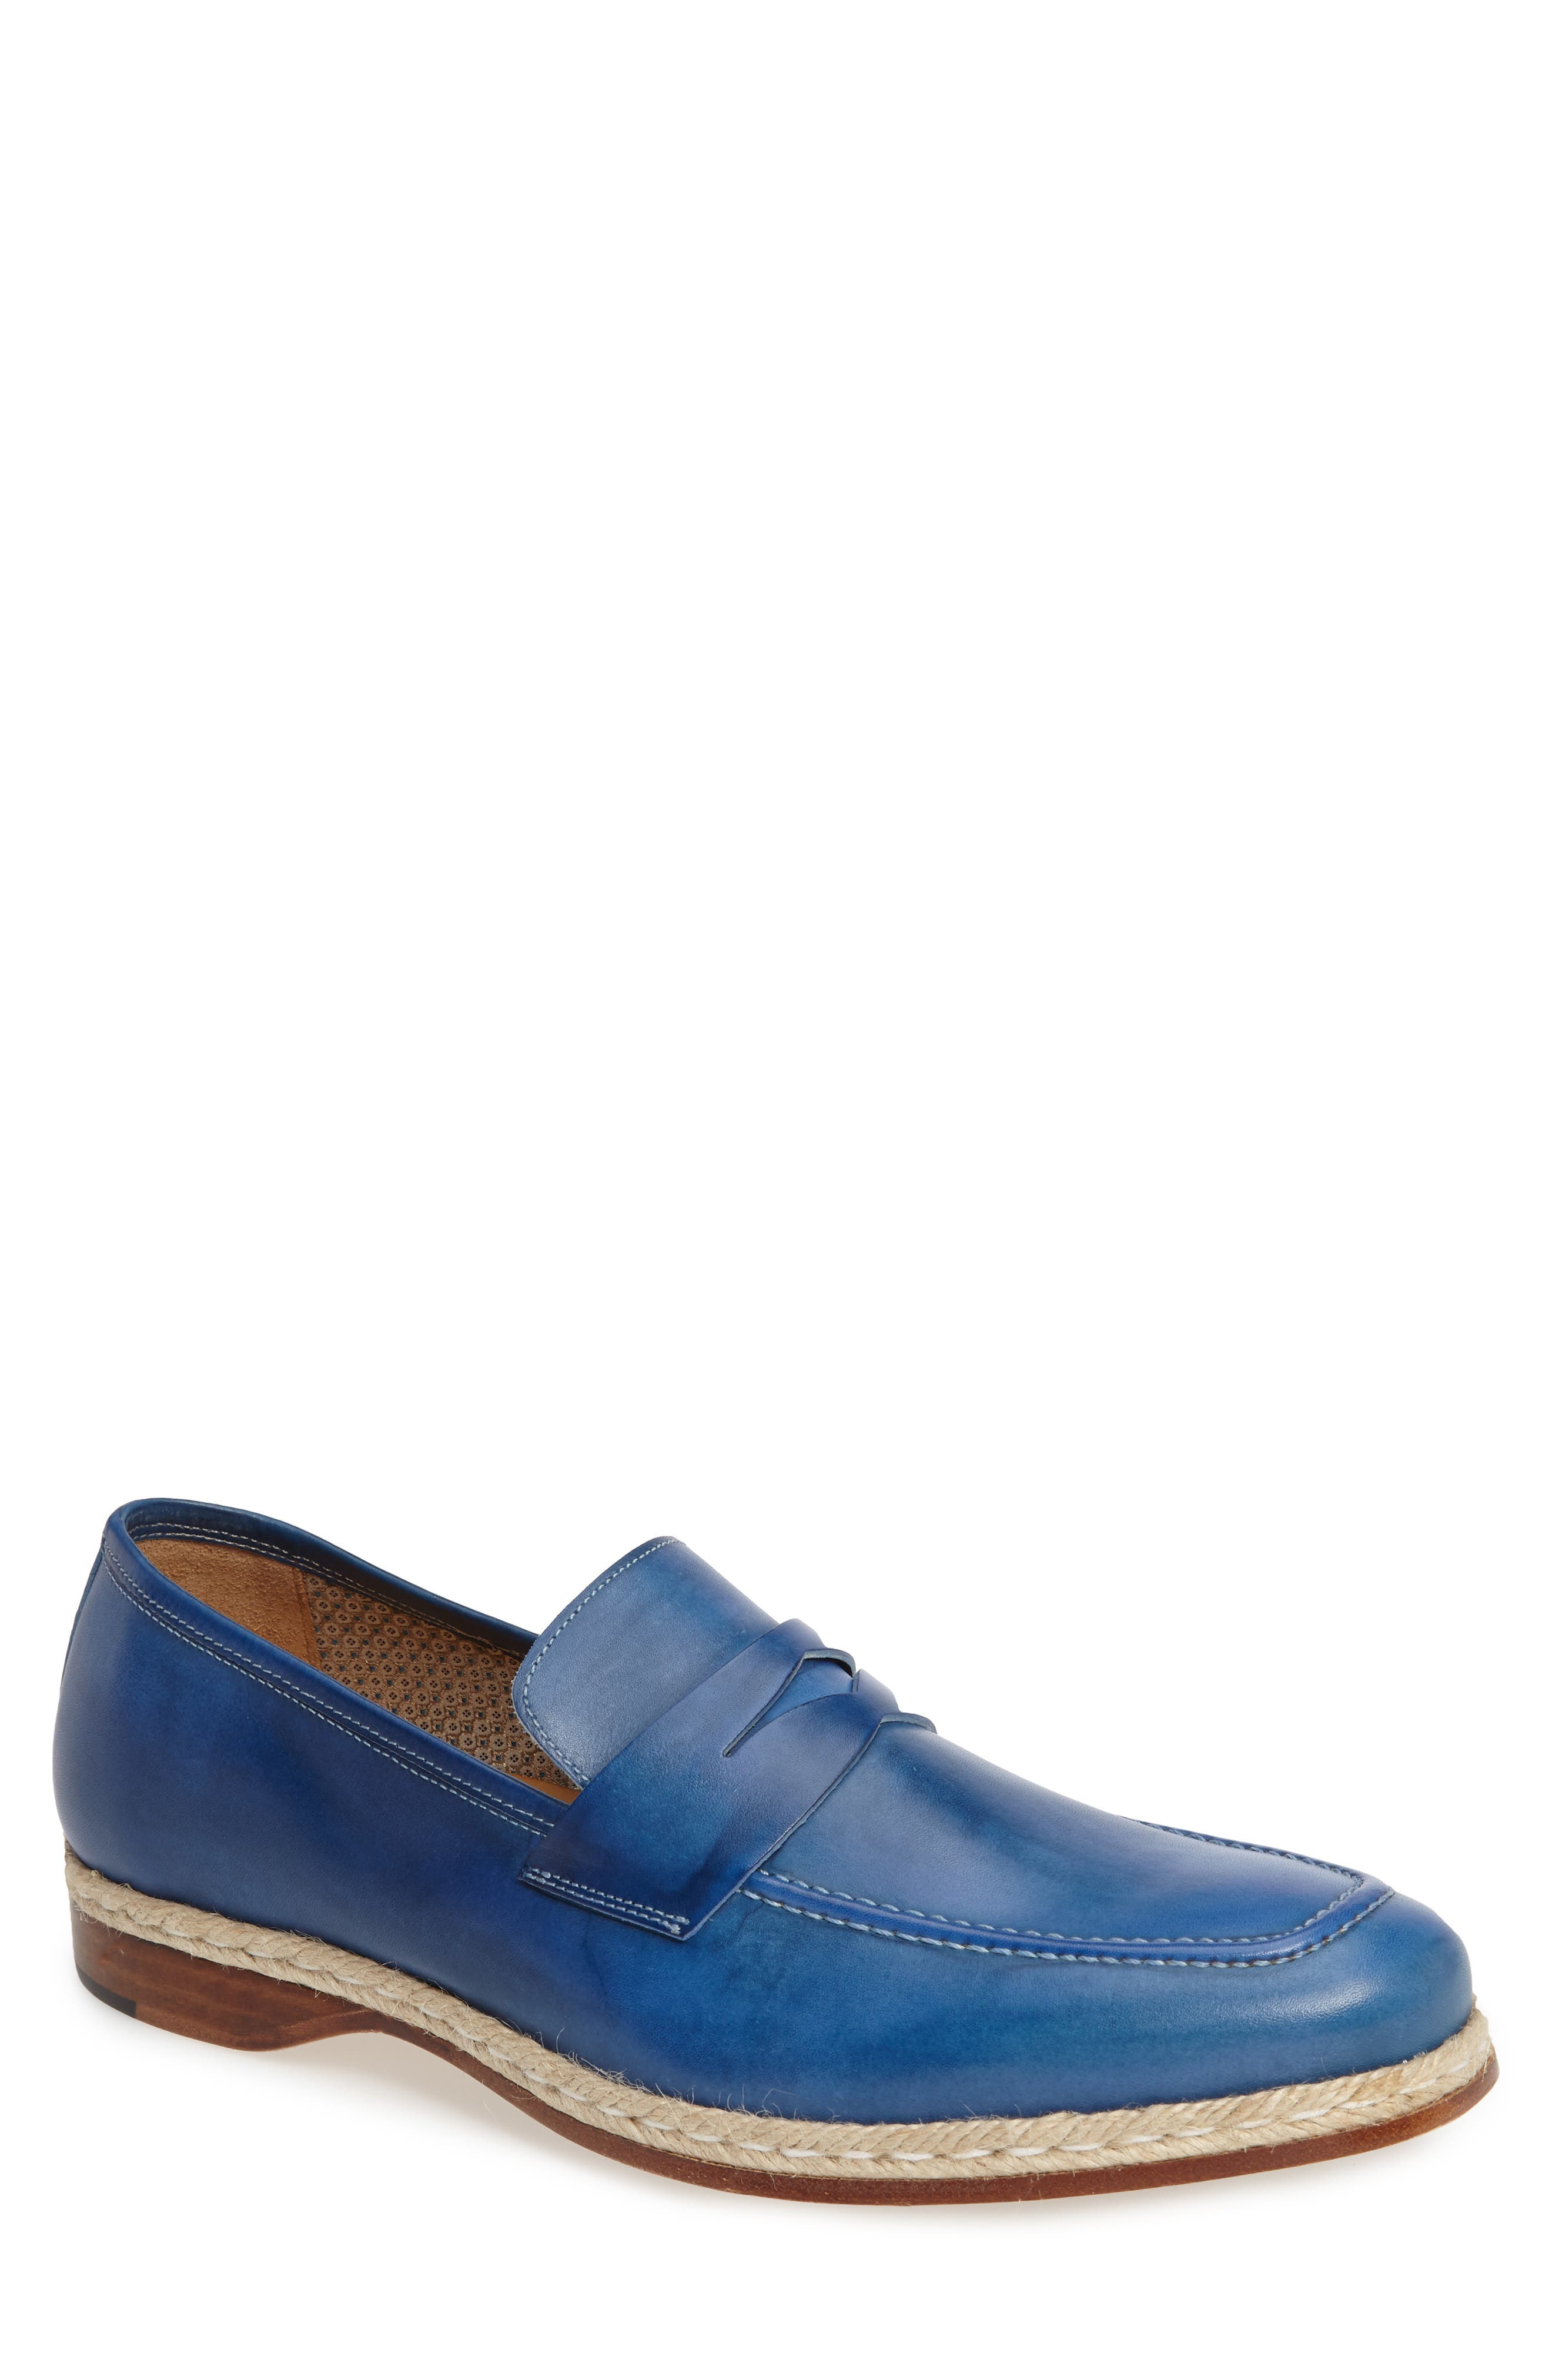 Battani Penny Loafer,                             Main thumbnail 1, color,                             Blue Leather